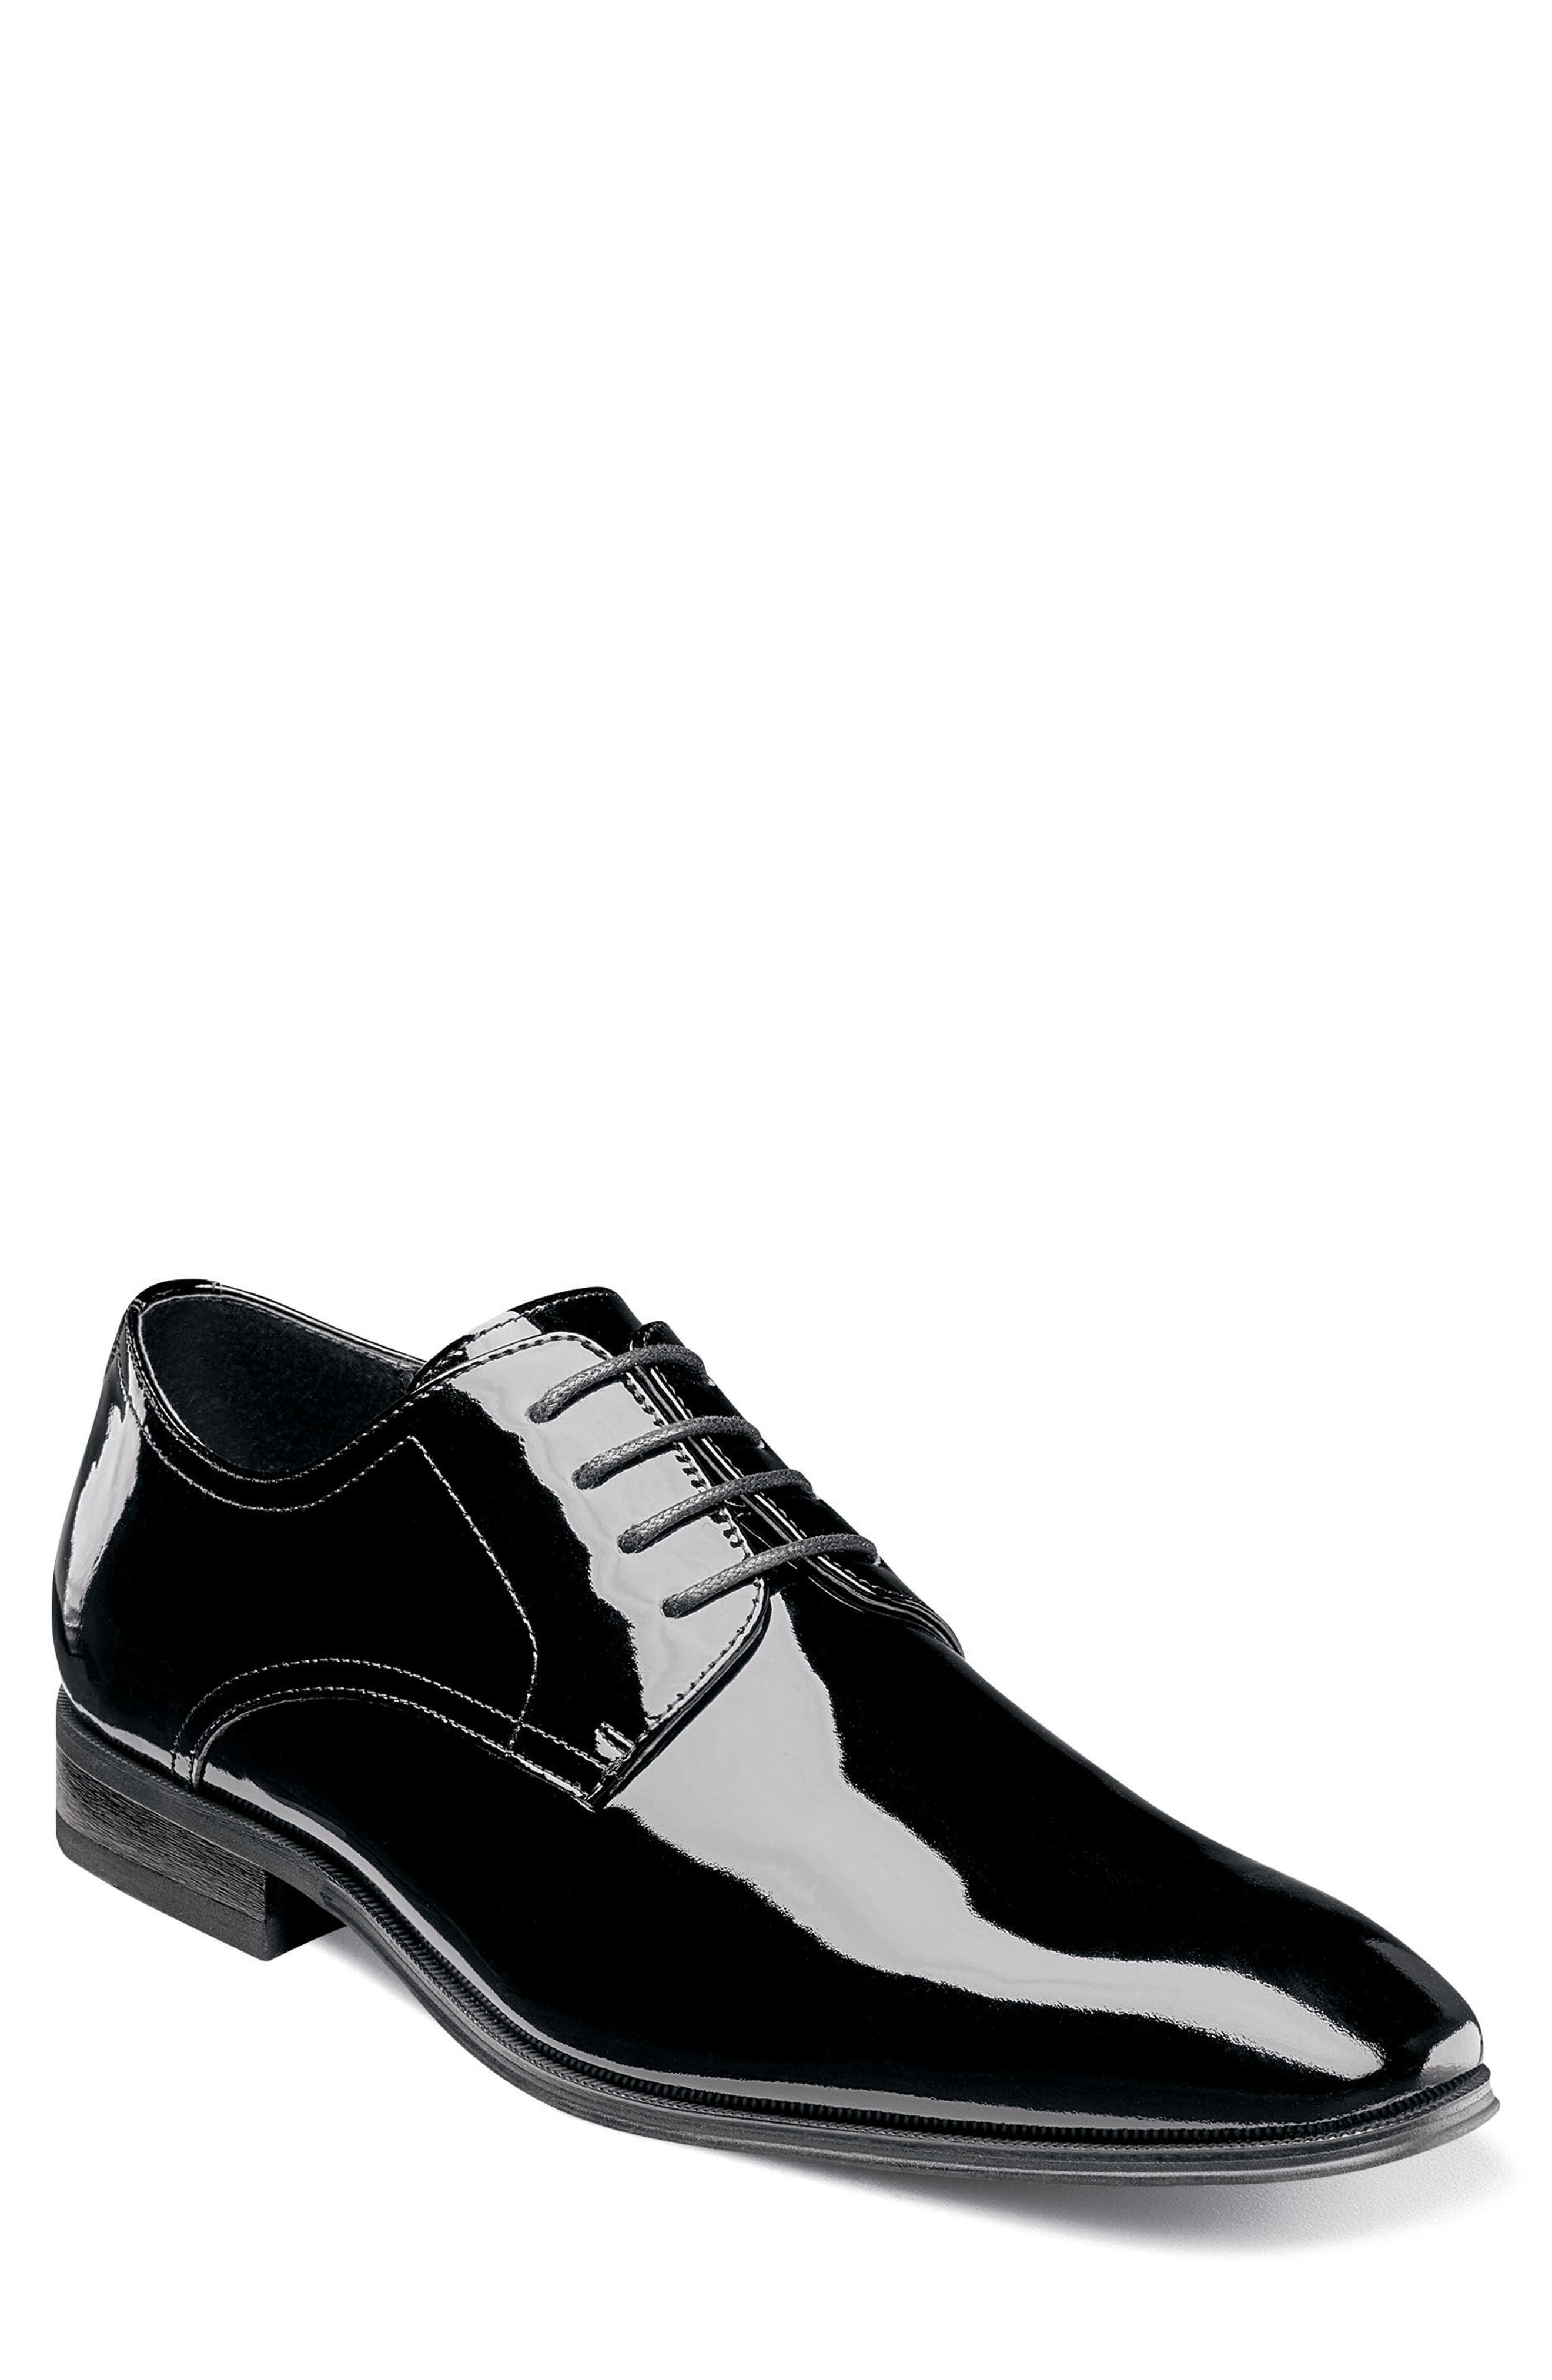 Tux Plain Toe Derby,                             Main thumbnail 1, color,                             BLACK PATENT LEATHER